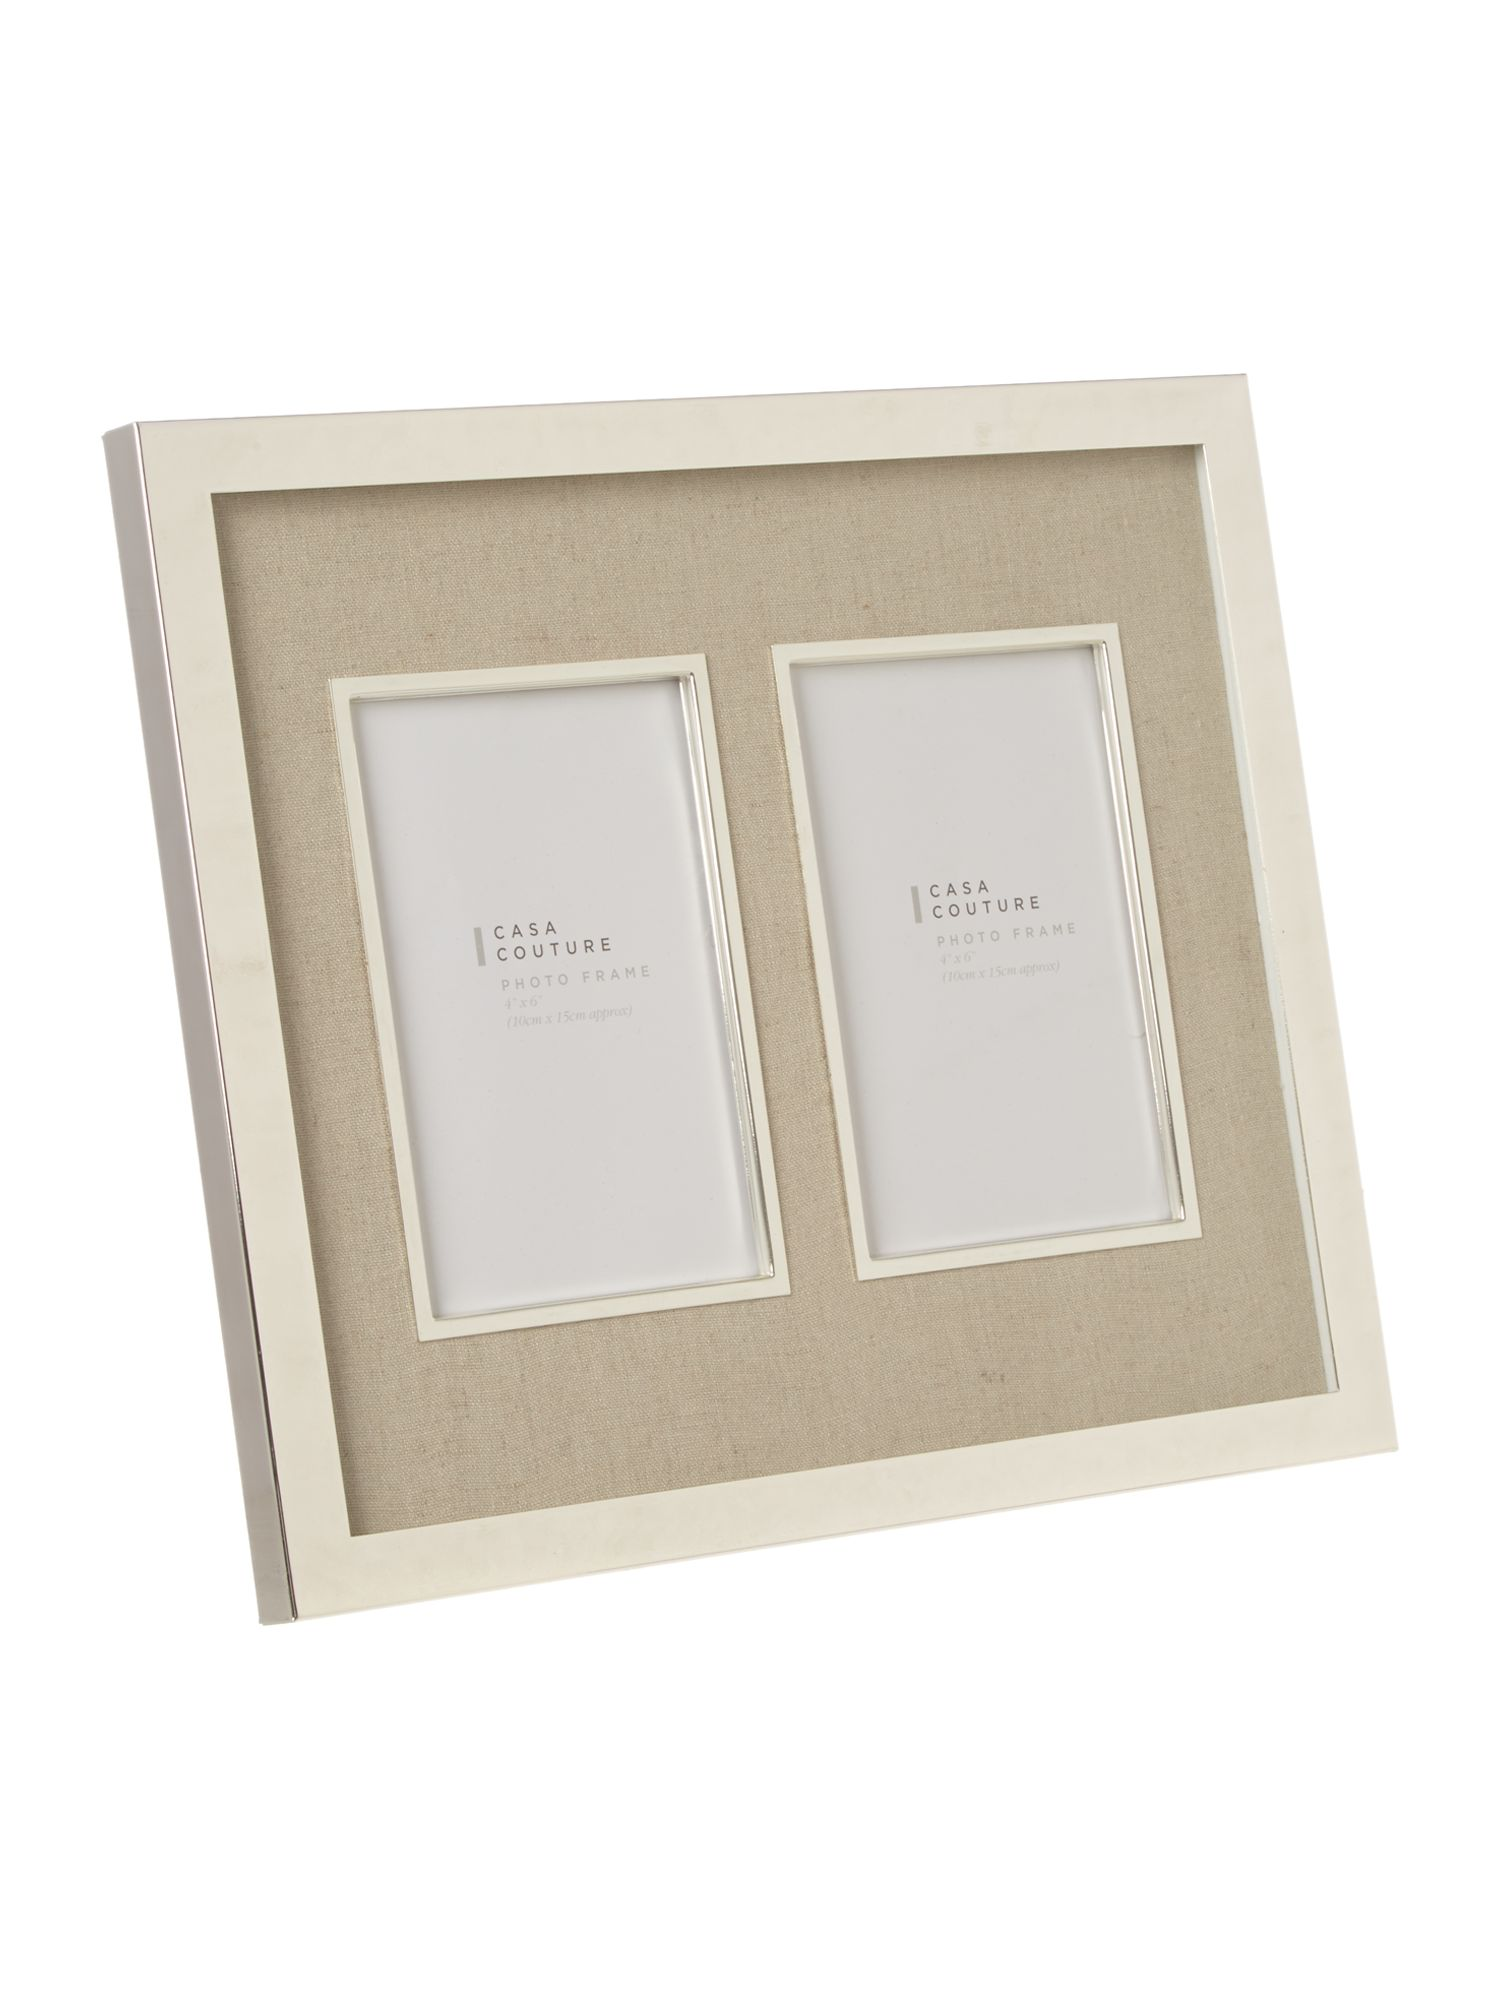 Cream fabric photo frame, double aperture